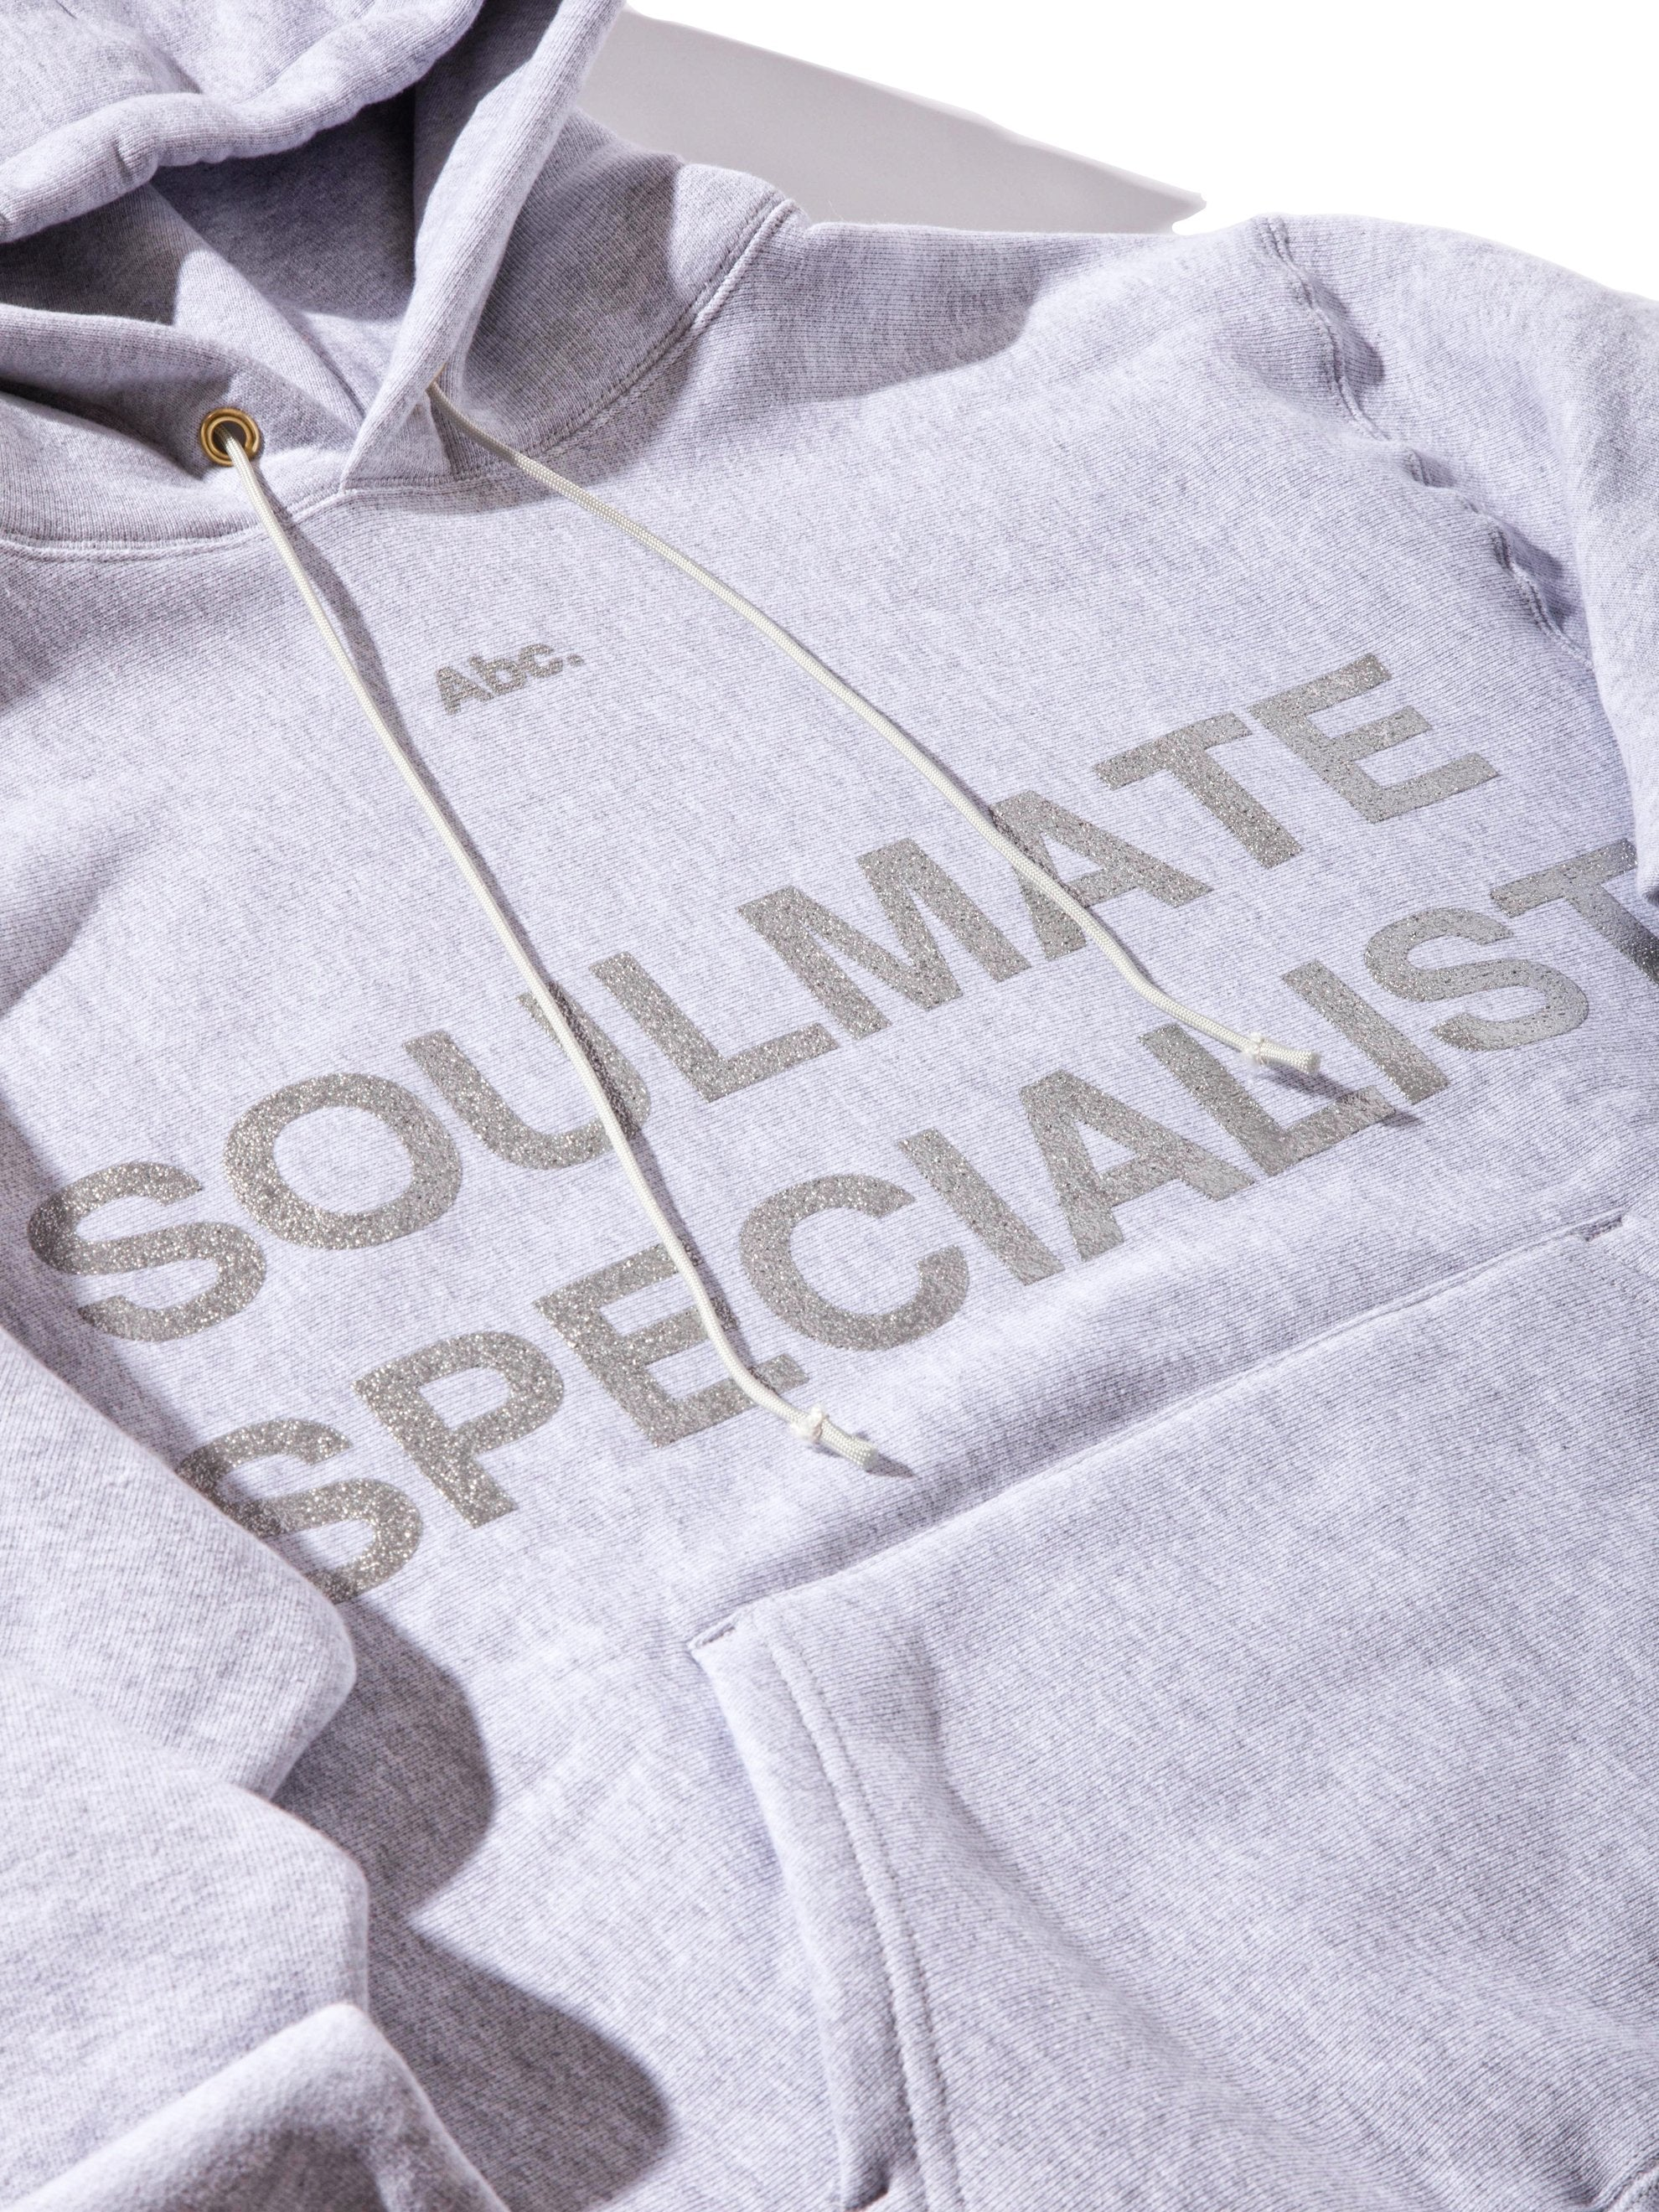 Heather Grey Soulmate Hooded Sweatshirt 6